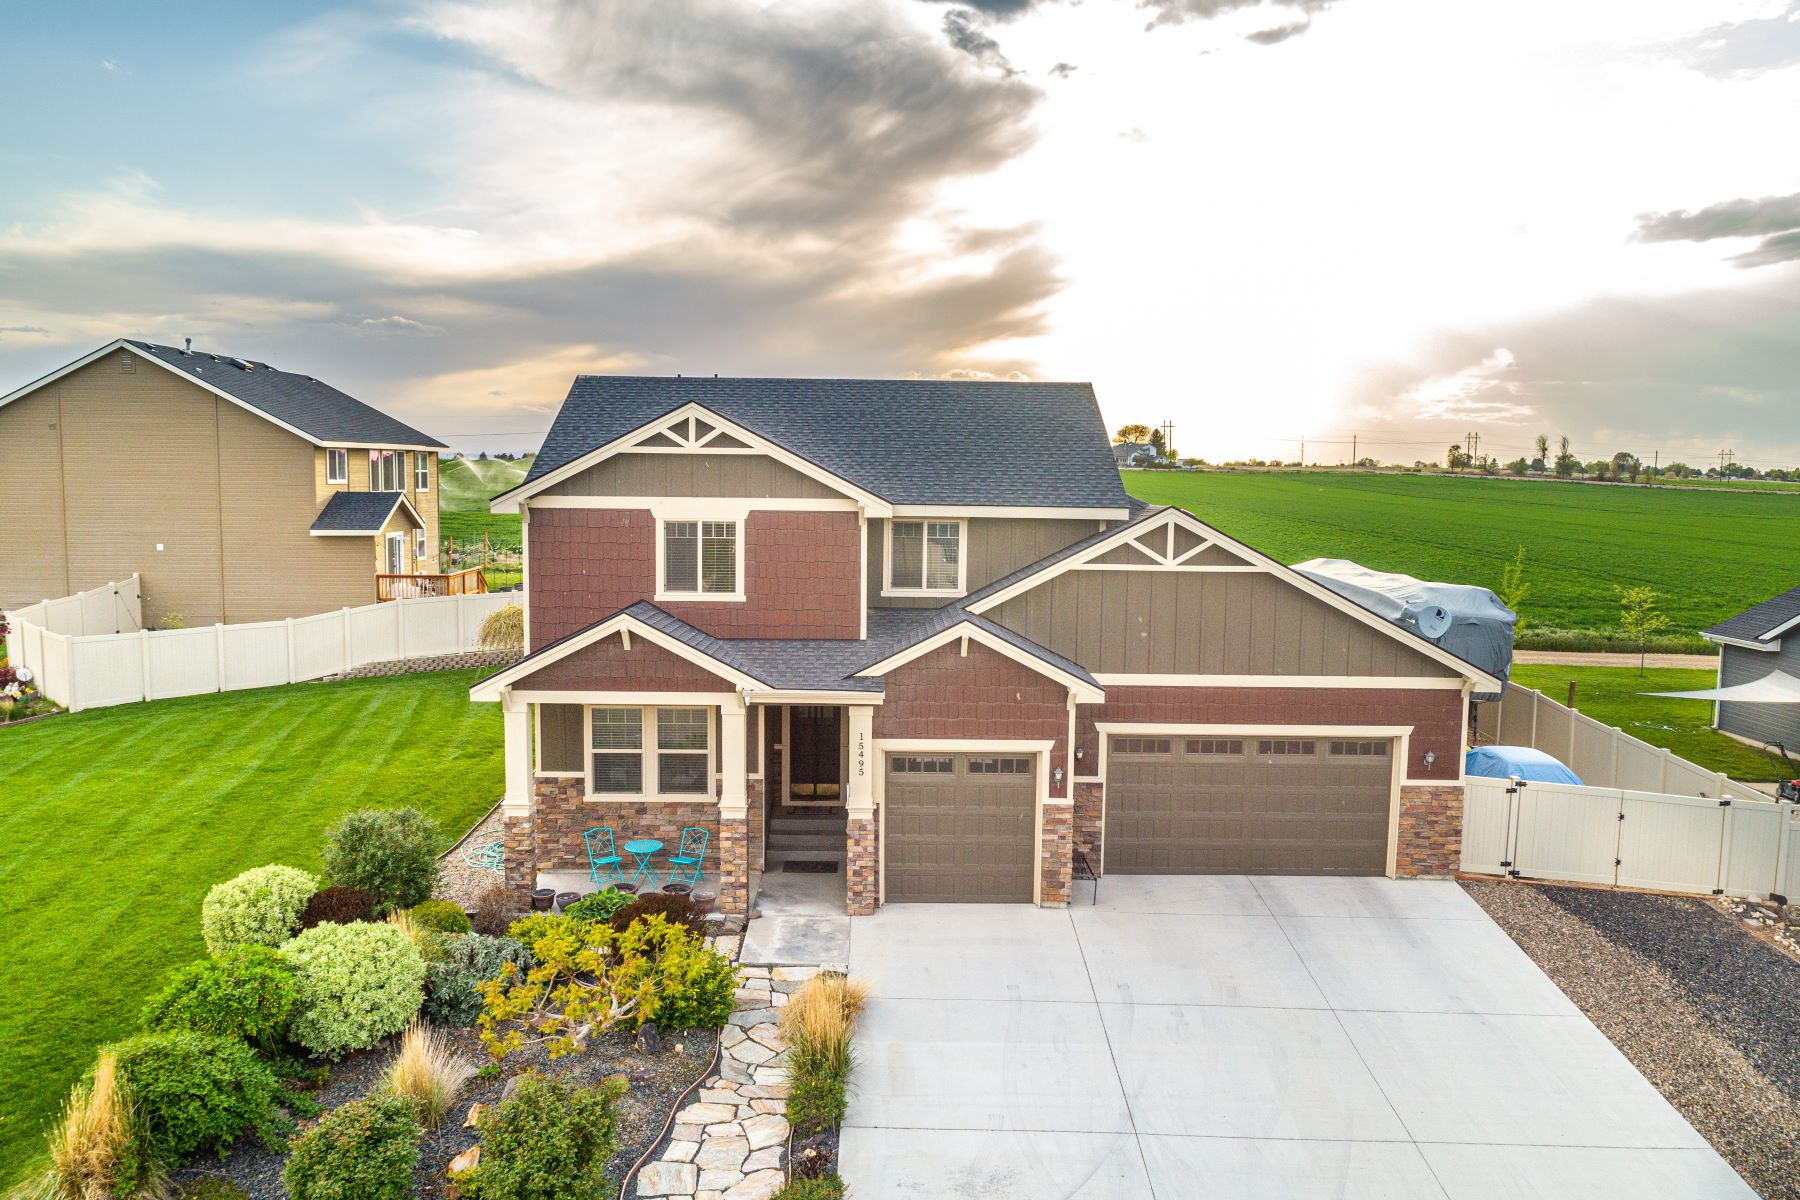 Single Family Homes for Sale at 15495 Blue Sky Ave Caldwell, Idaho 83607 United States